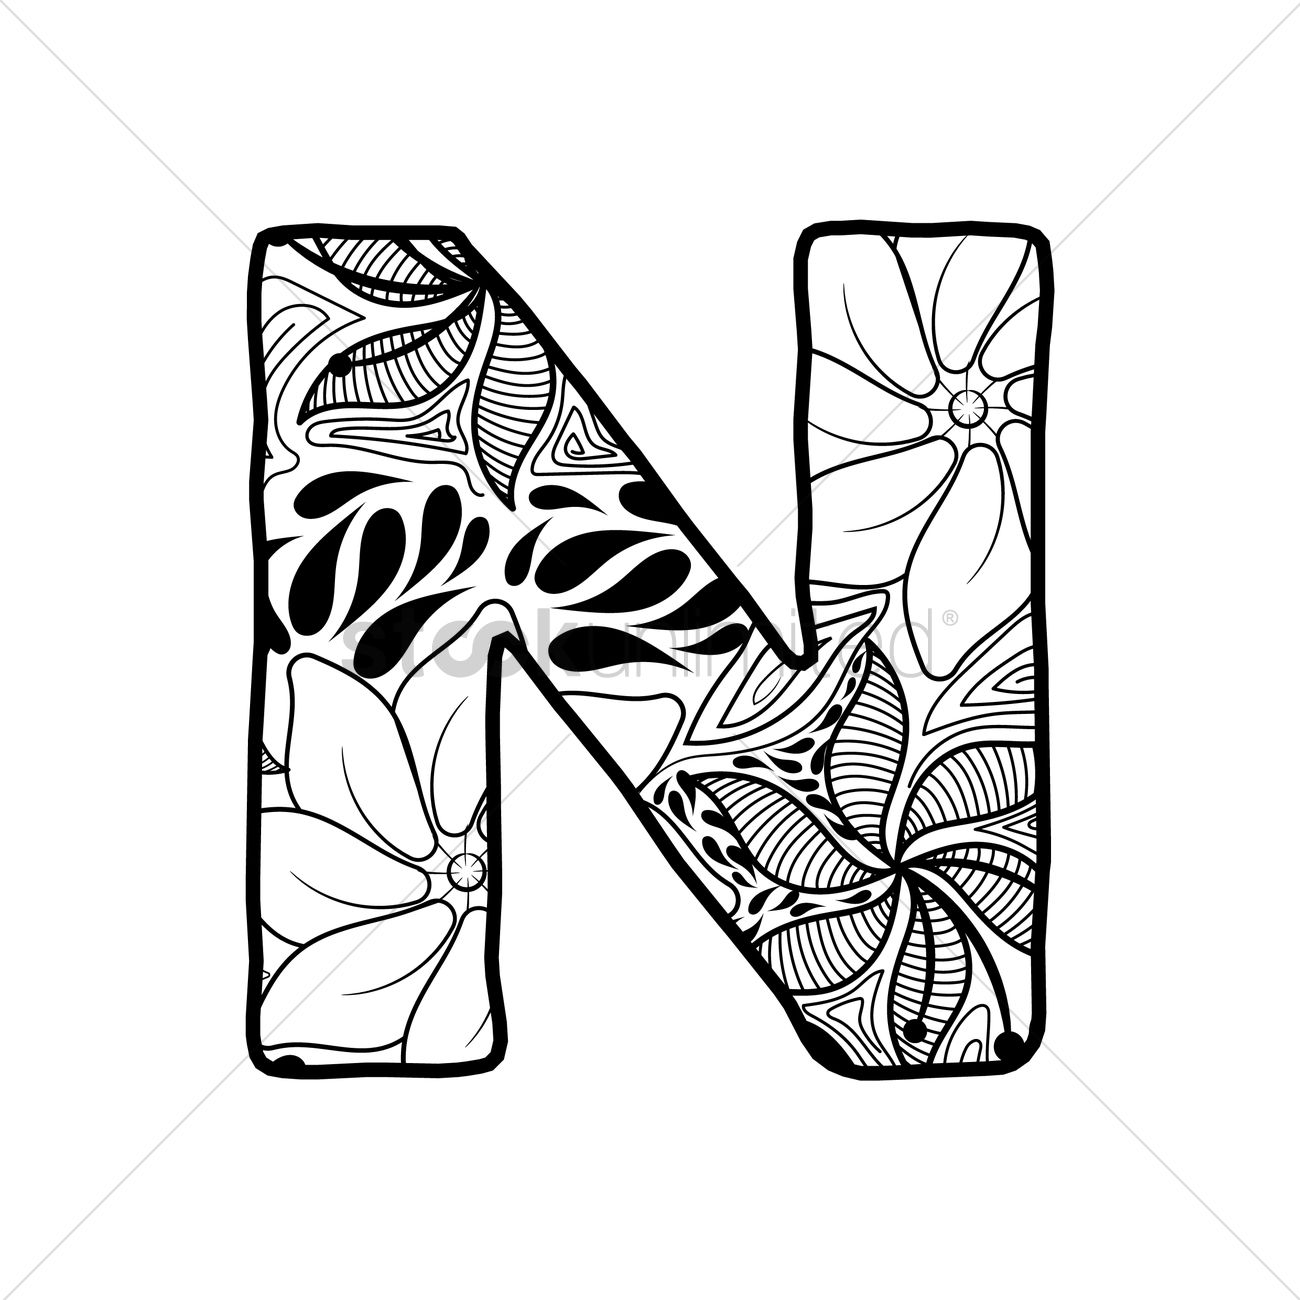 hight resolution of 1300x1300 letter n vector image